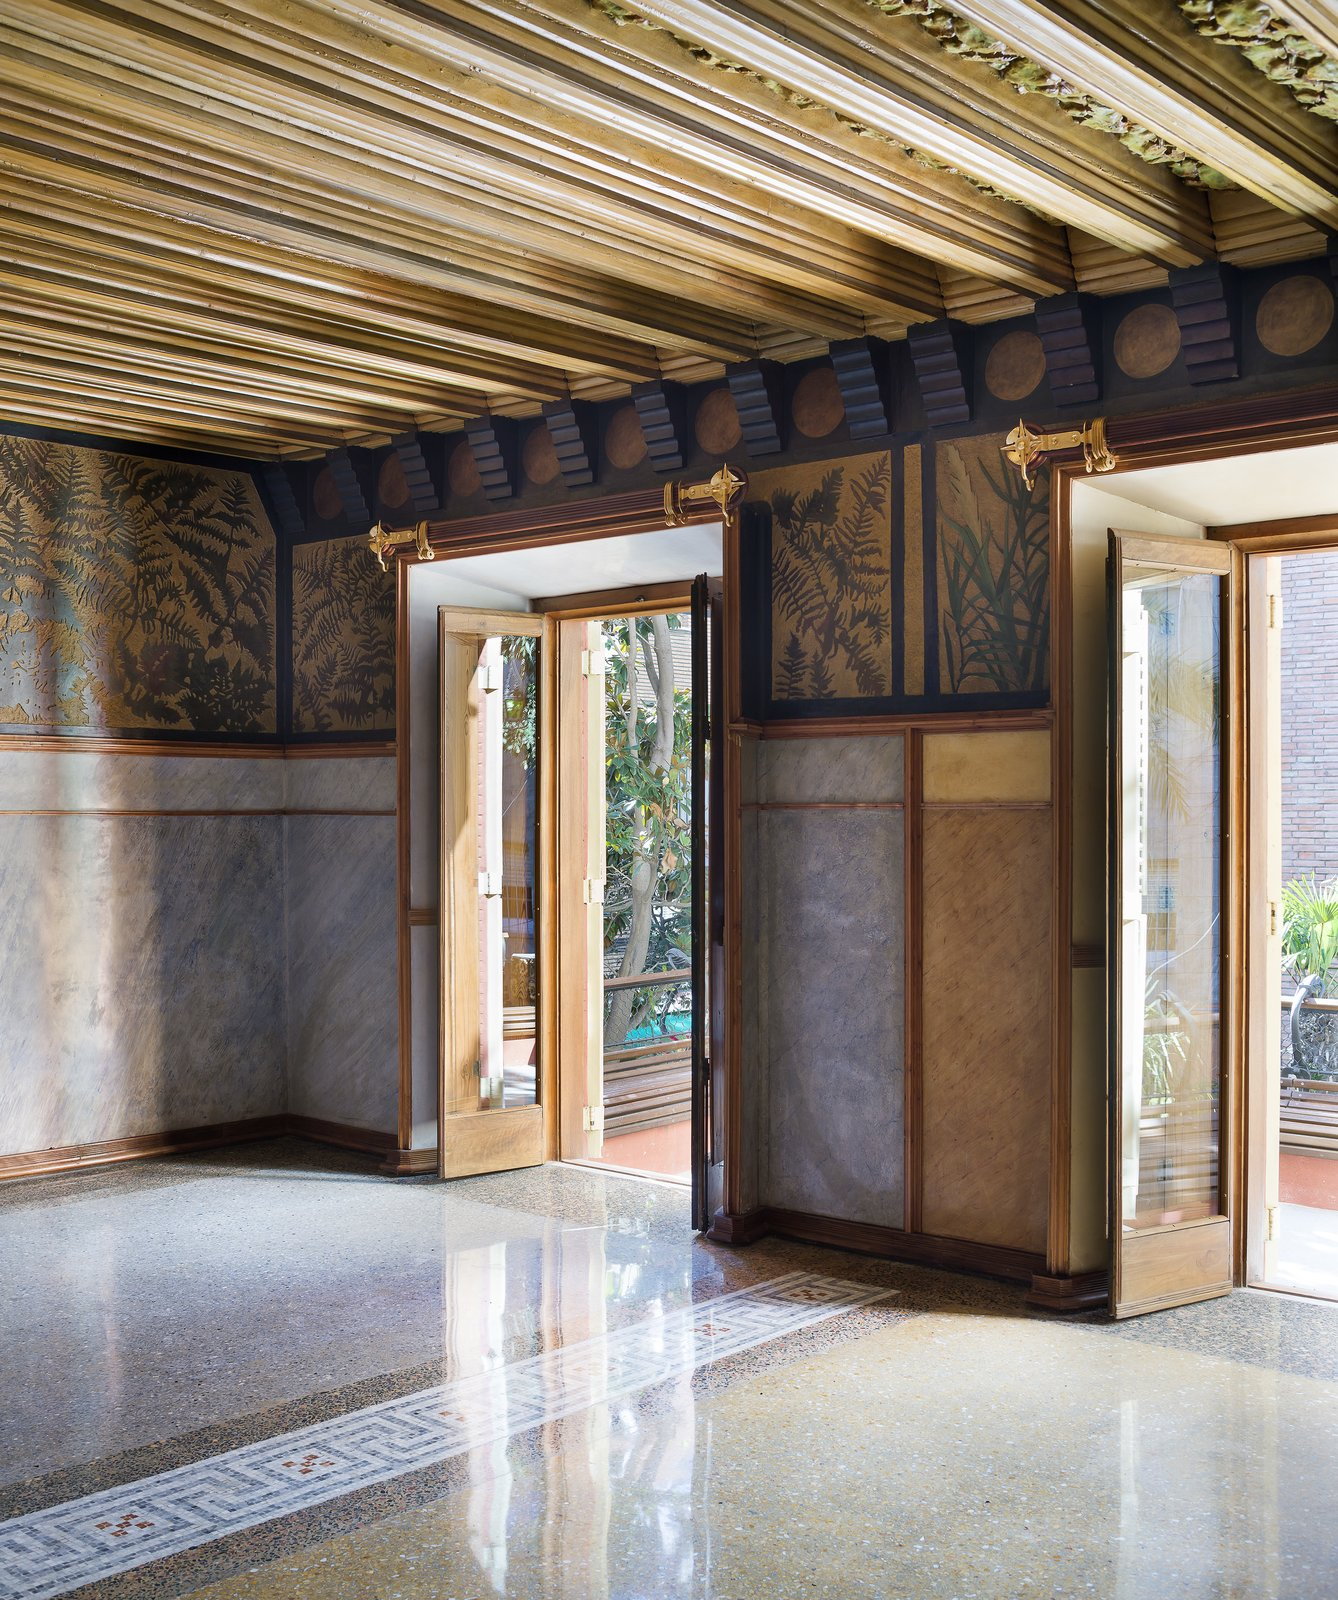 Doors, Swing Door Type, Wood, and Exterior  Photo 7 of 11 in Gaudí's Fantastic Casa Vicens Opens to the Public For the First Time